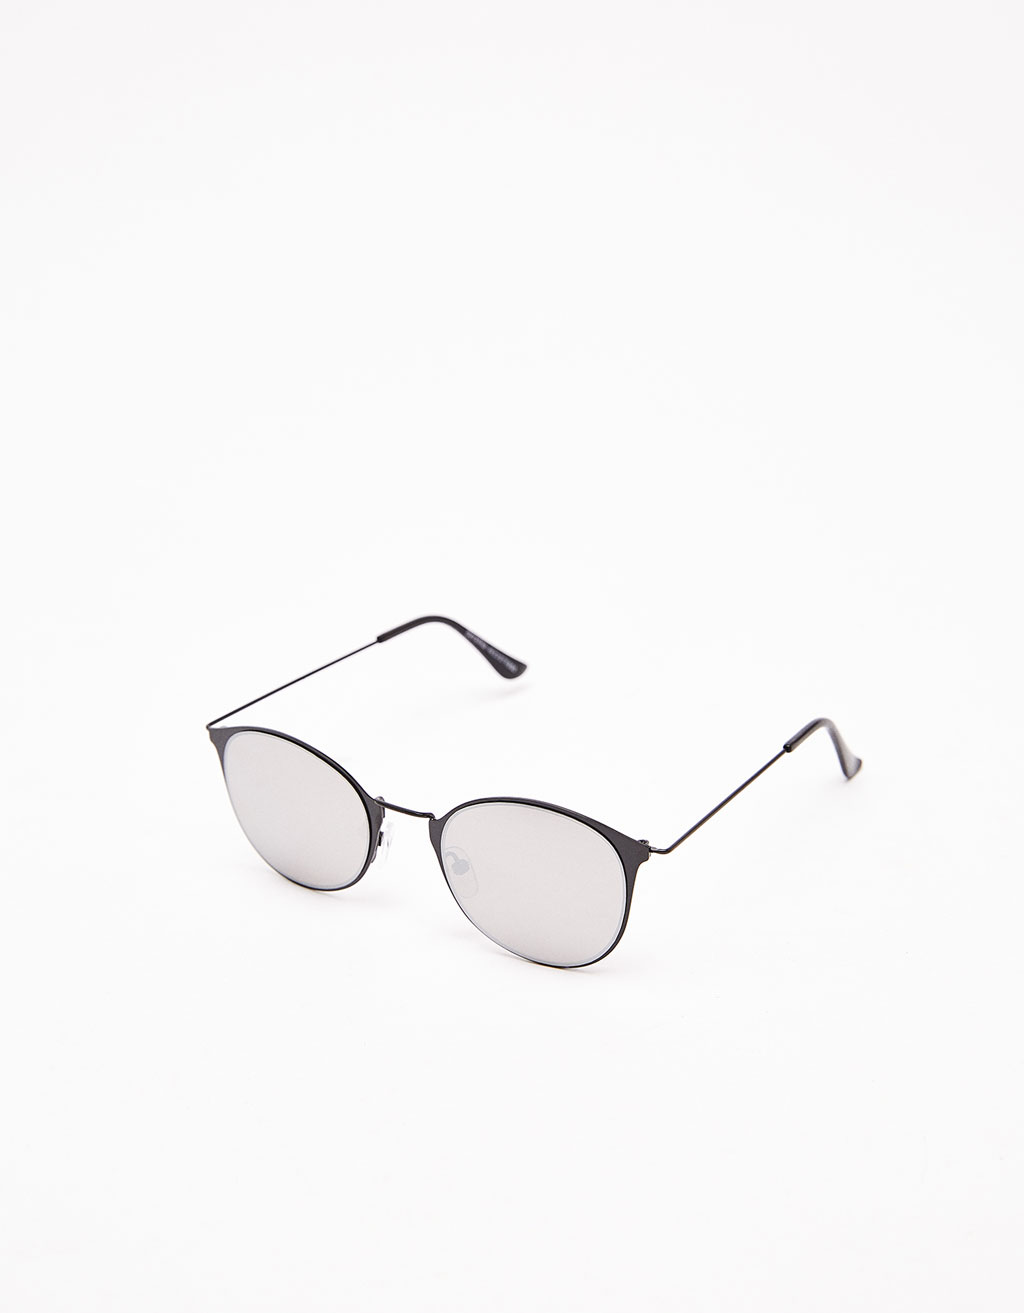 Metallic mirror-effect sunglasses